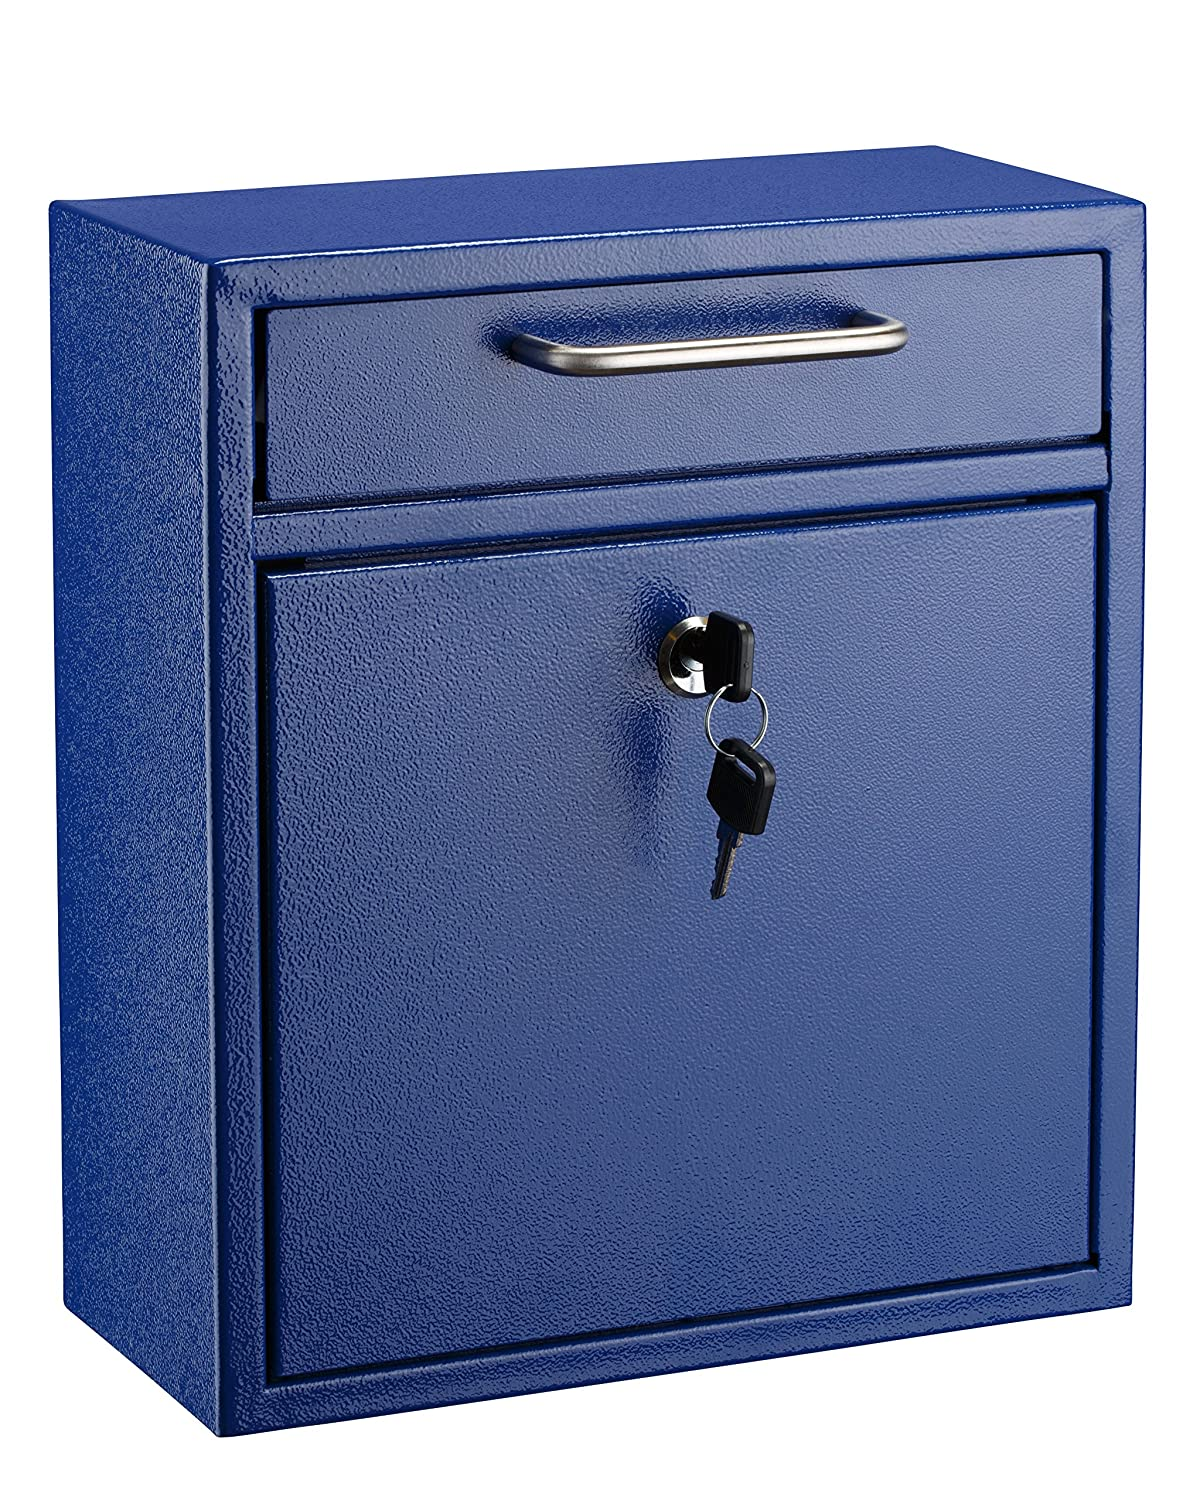 4. AdirOffice Locking Drop Box - Wall Mounted Mailbox